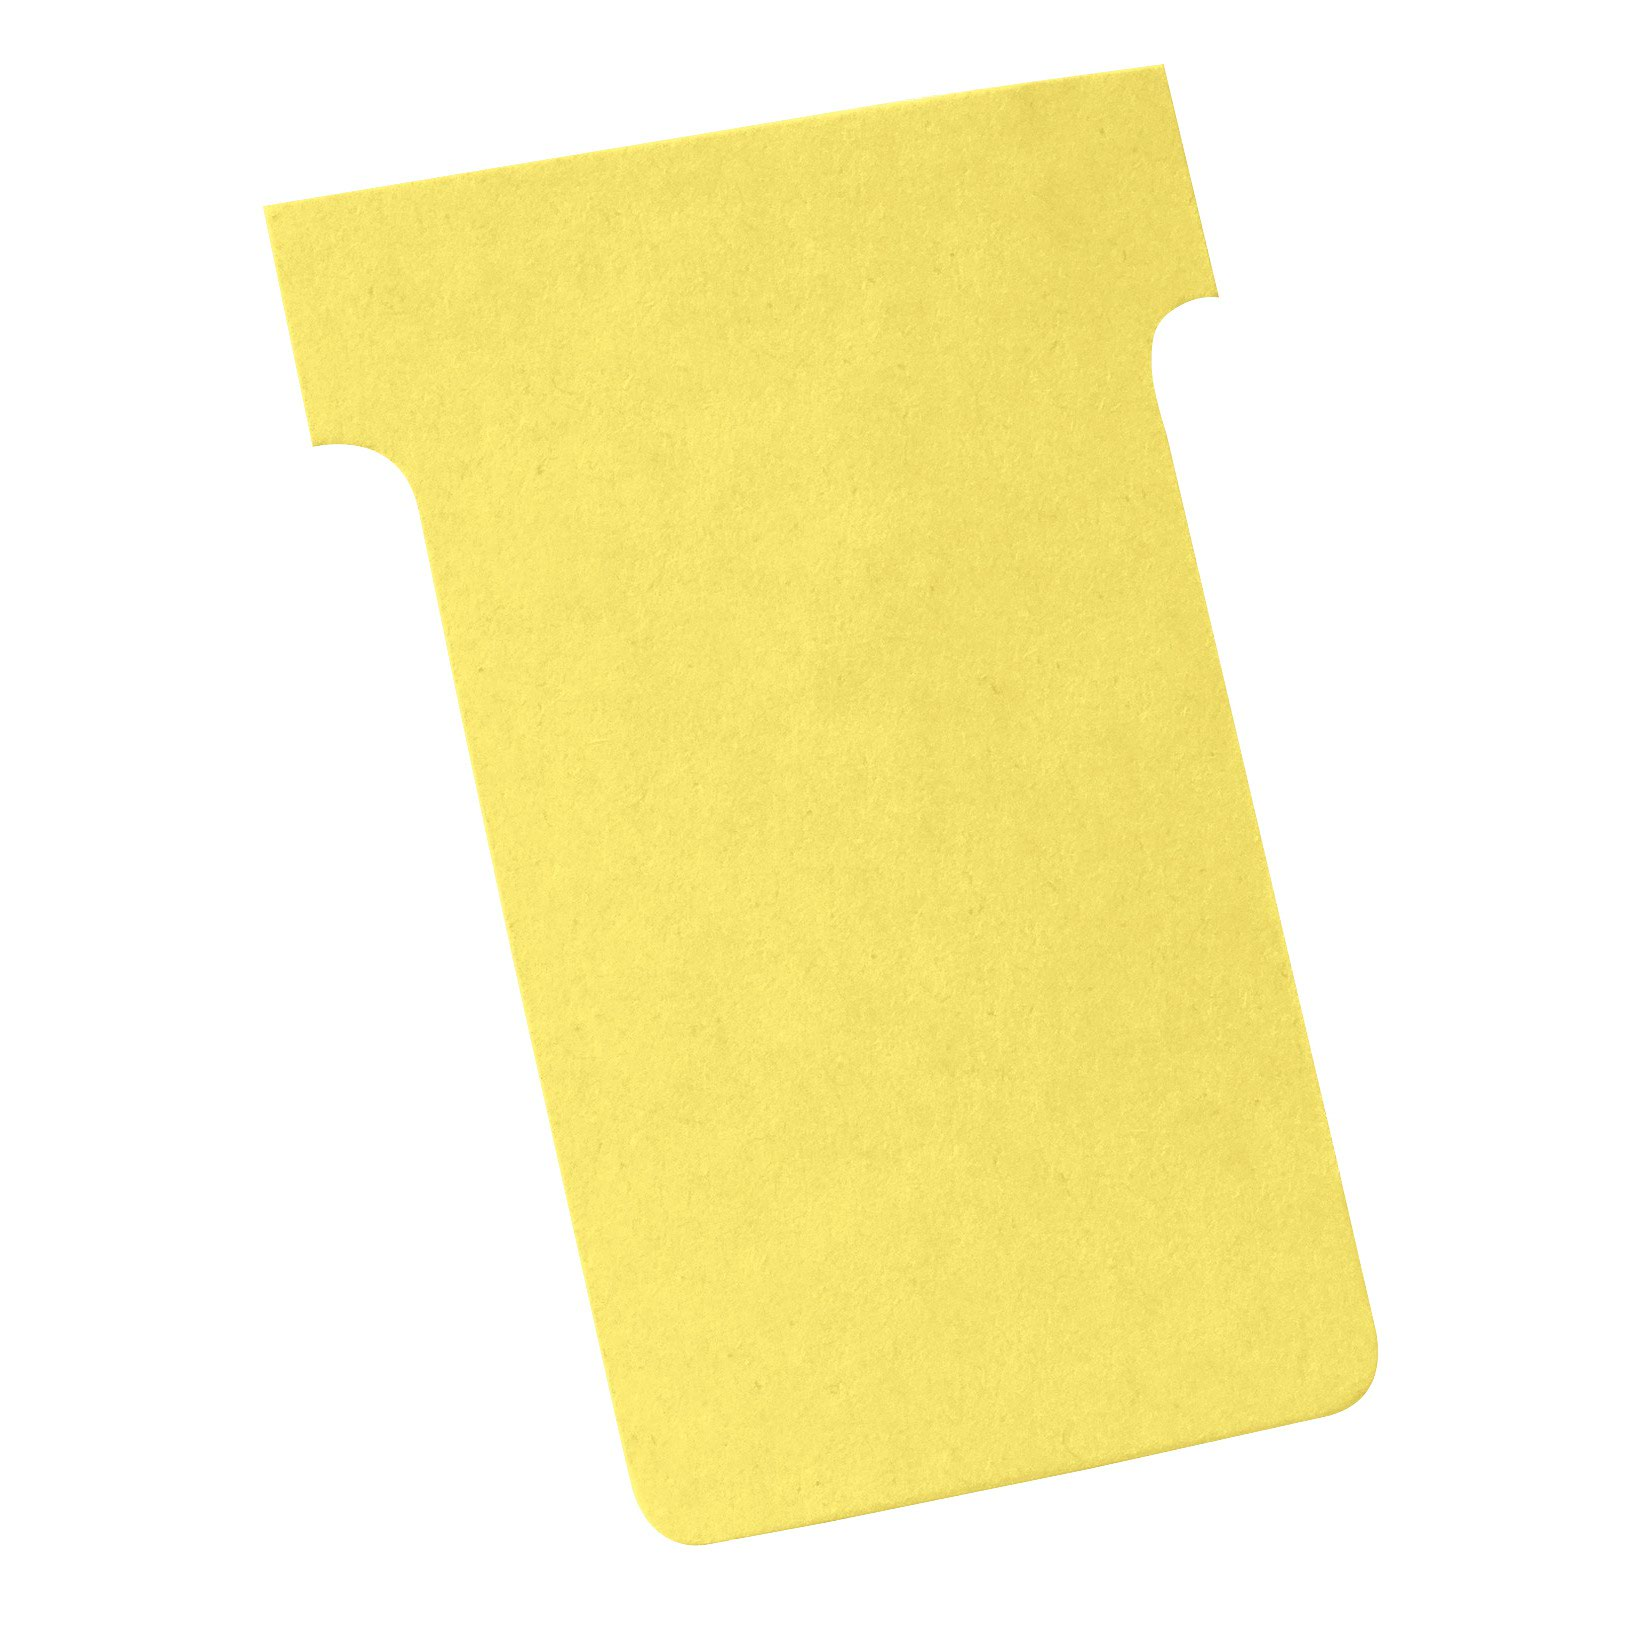 Nobo T-Cards A50 Size 2 Yellow (100) 2002004